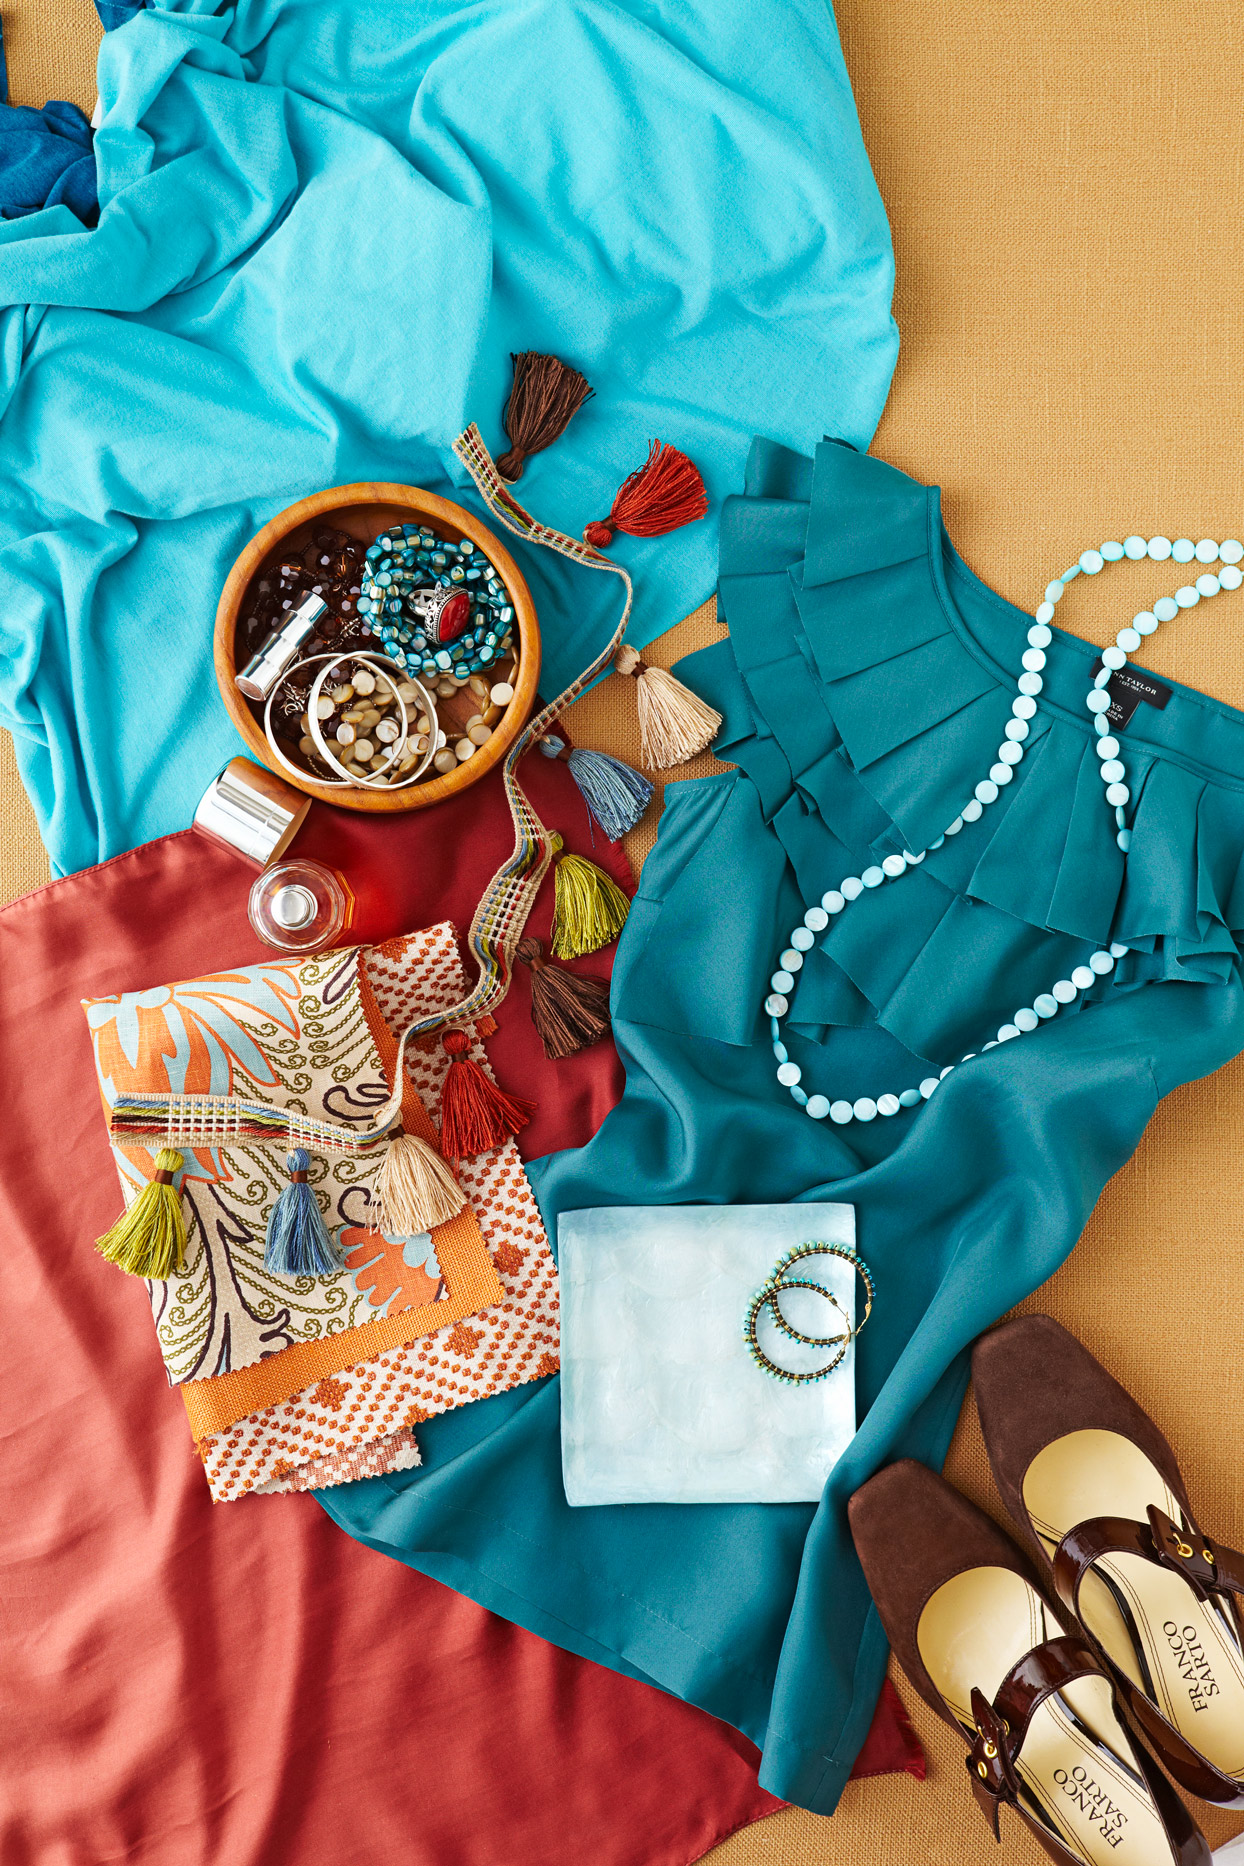 Teal blouse with colorful jewelry